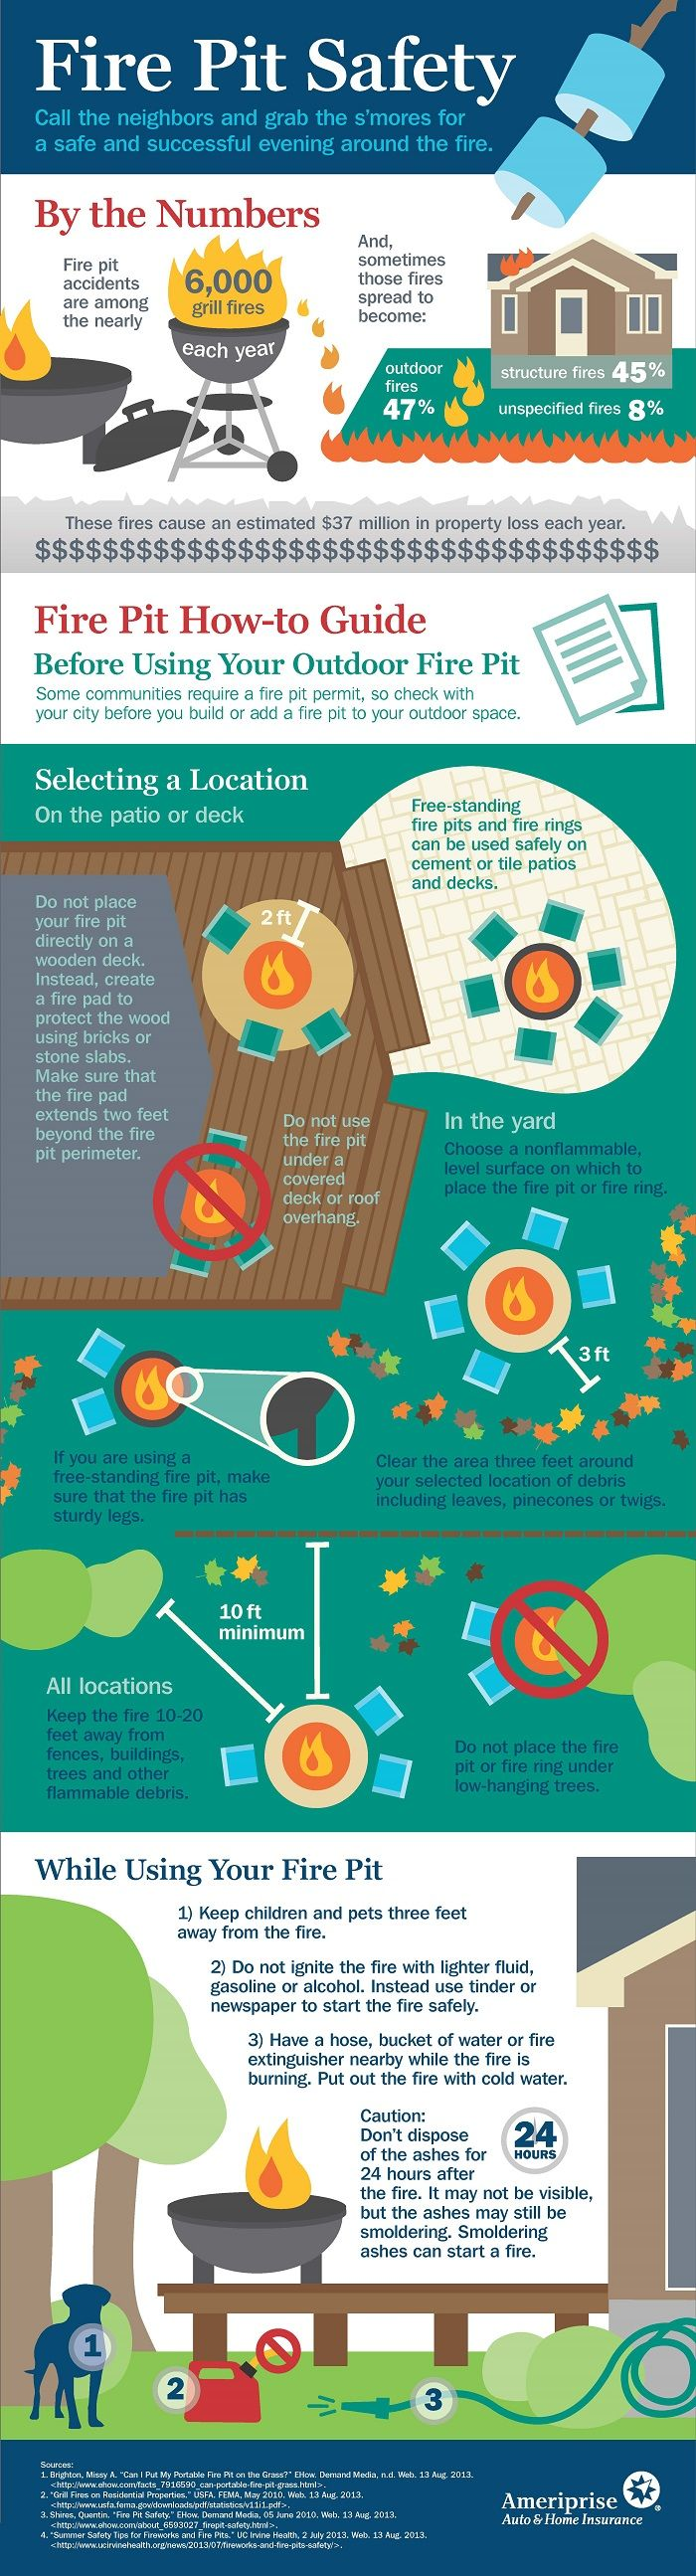 Considering a new #firepit for your outdoor space? Check out this #infographic on fire-pit safety and how-to guide.